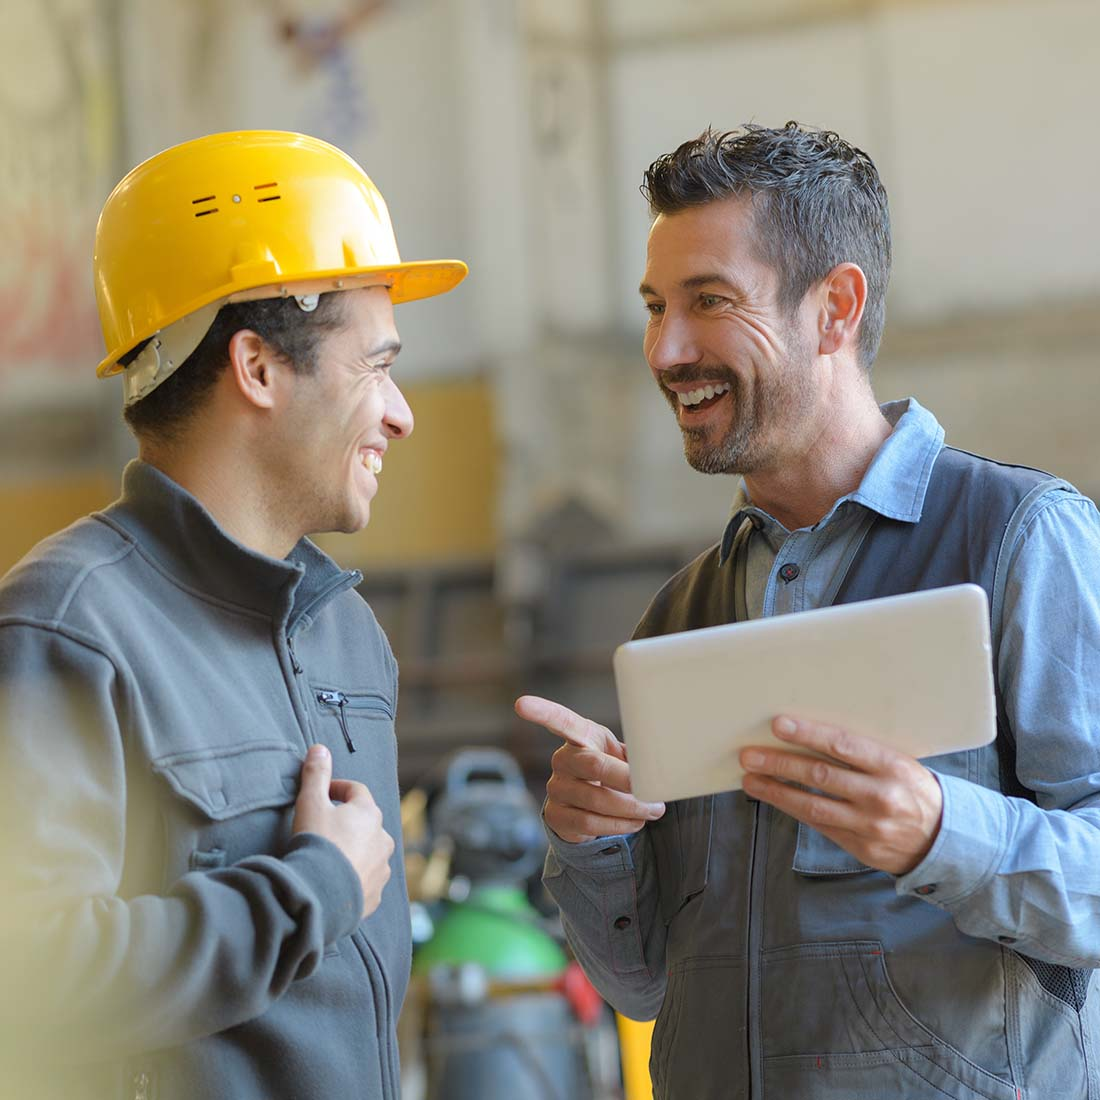 Male factory worker talking and smiling with supervisor